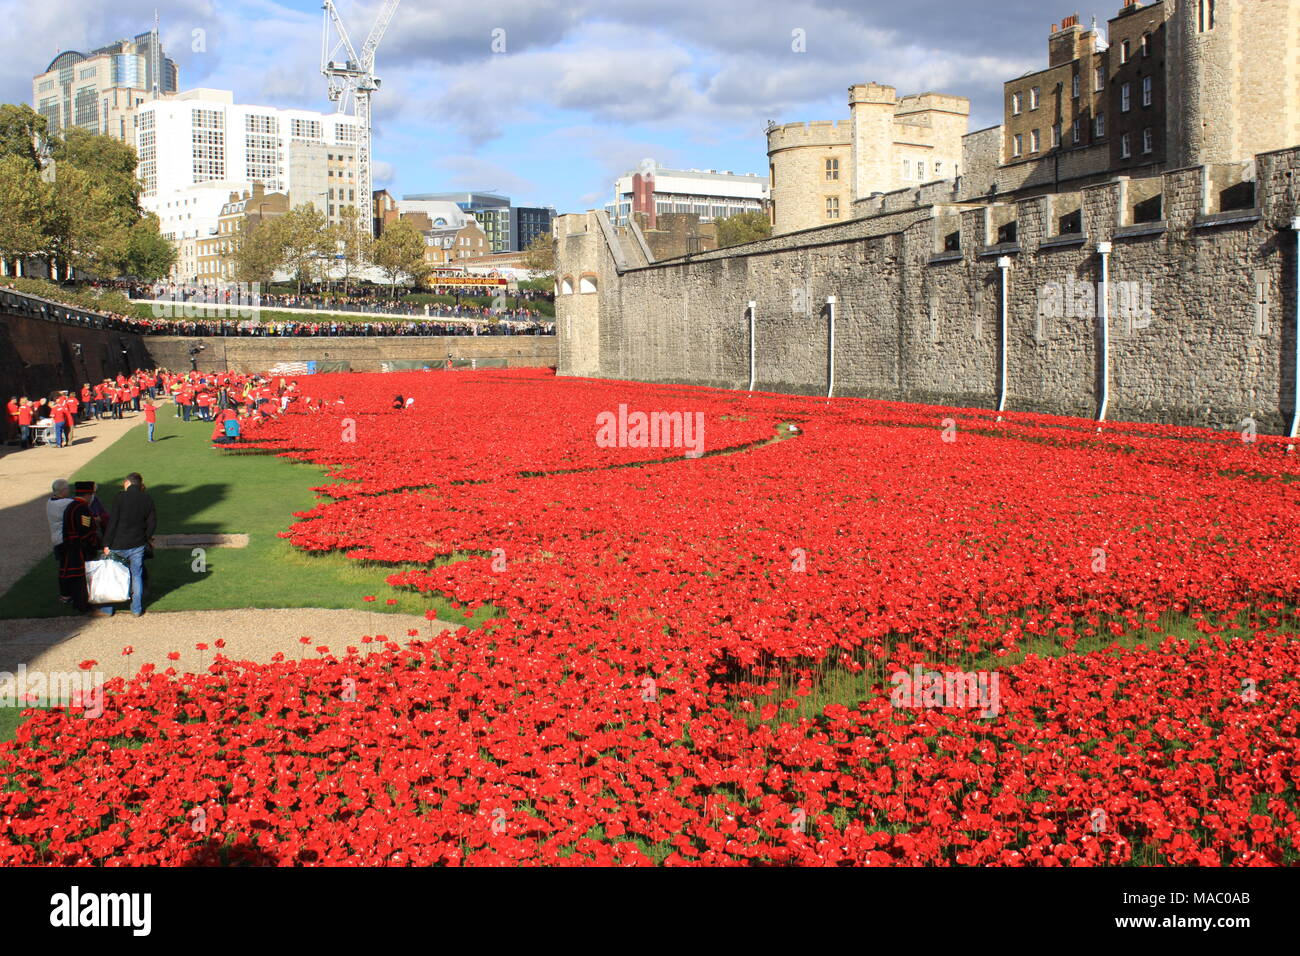 Blood Swept Lands and Seas of Red was a work of installation art placed in the moat of the Tower of London, England, 2014, UK, PETER GRANT - Stock Image